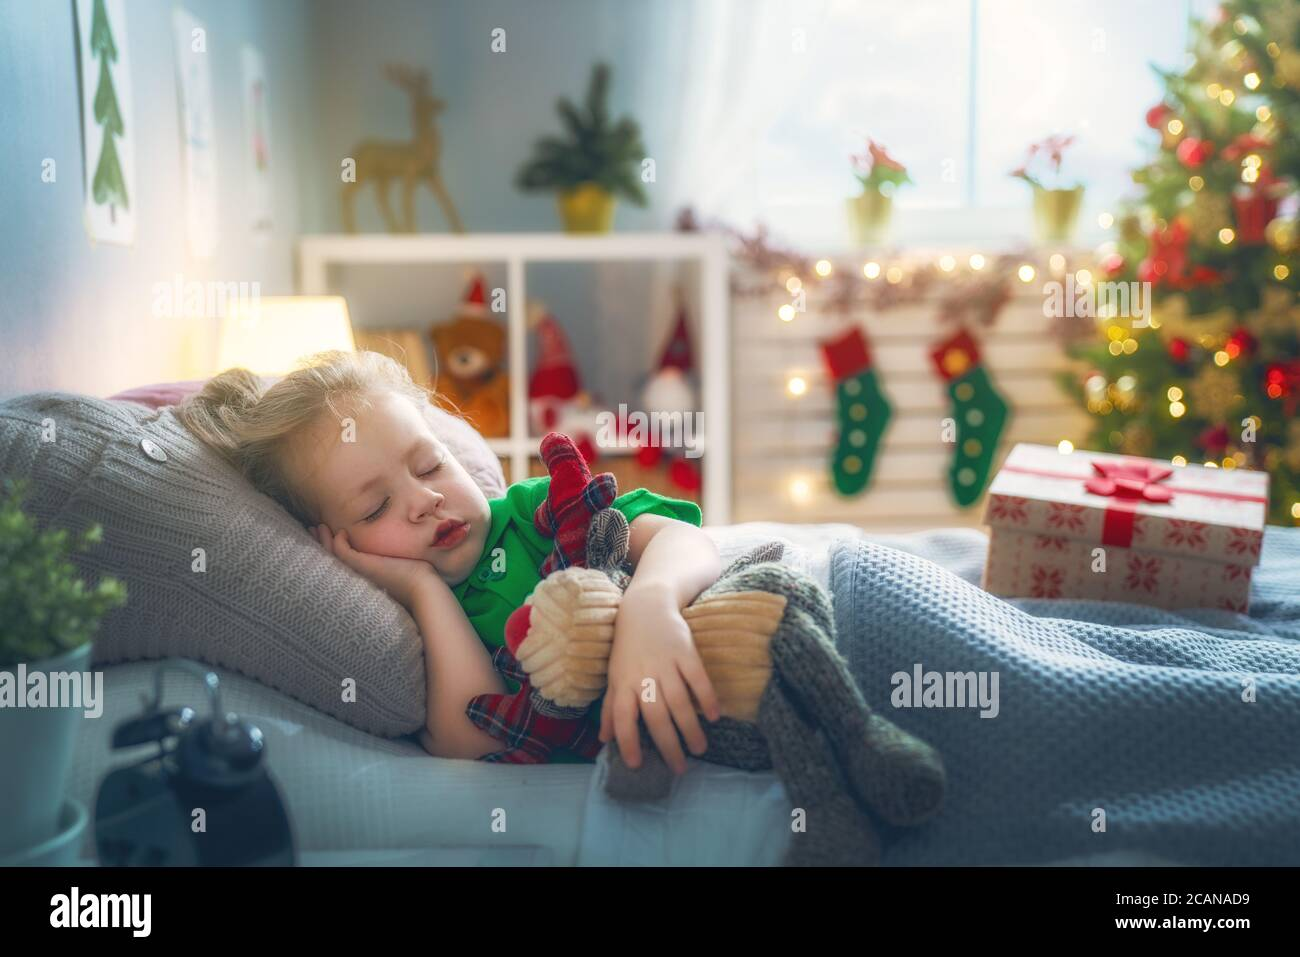 Merry Christmas and Happy Holiday! Cute little child girl sleeping in the bed near tree at home. Stock Photo